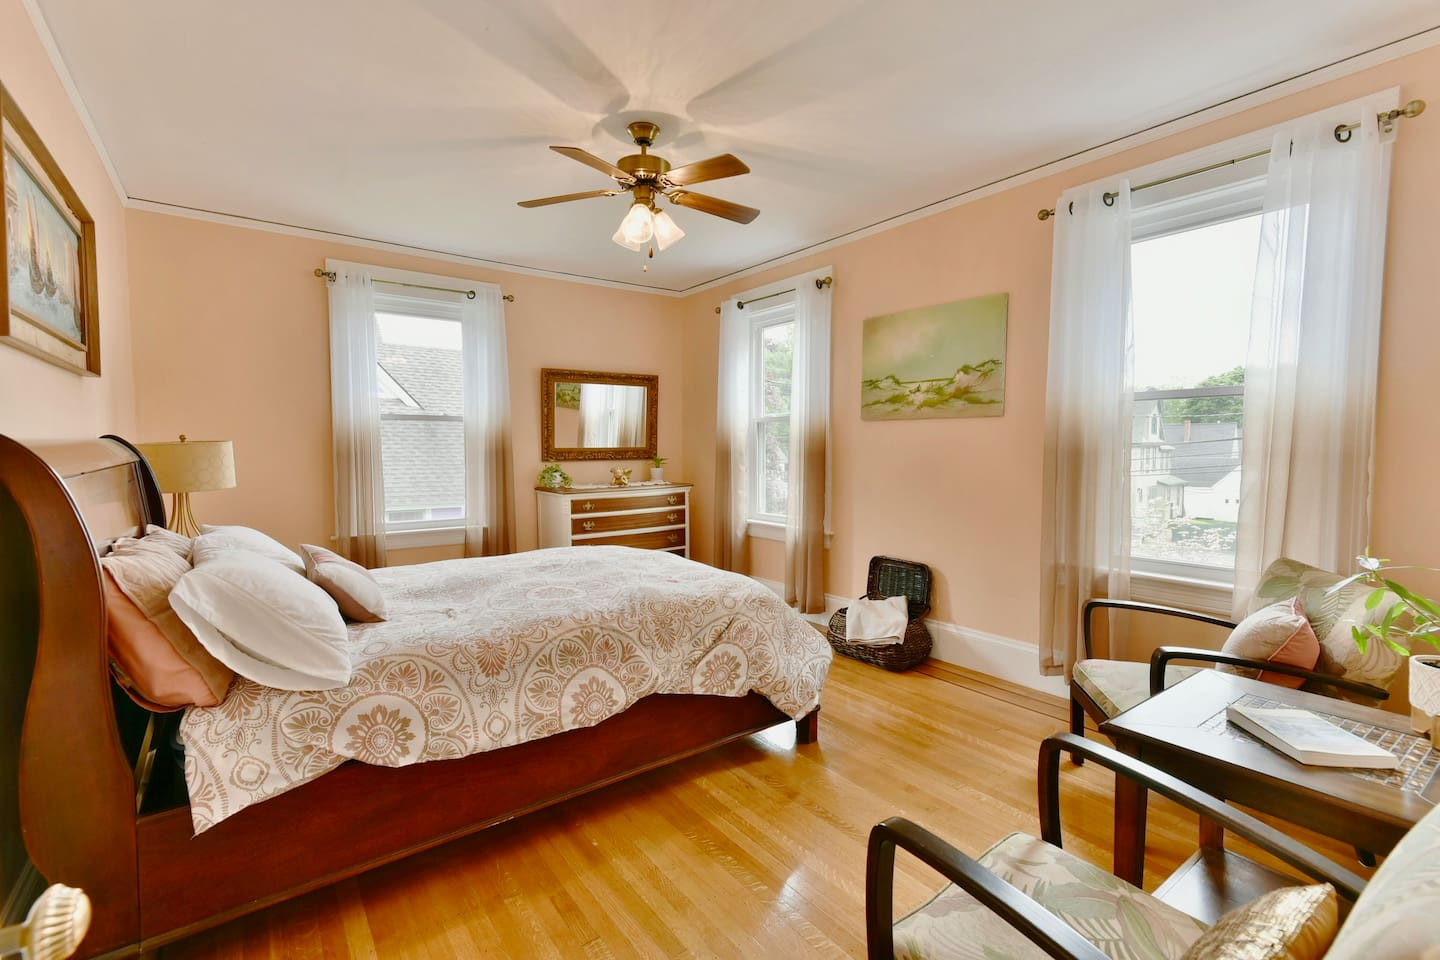 Spacious, sunny and fresh - The Peach Room. All original flooring, woodwork, walls and ceilings.  Convenient sitting/work area.